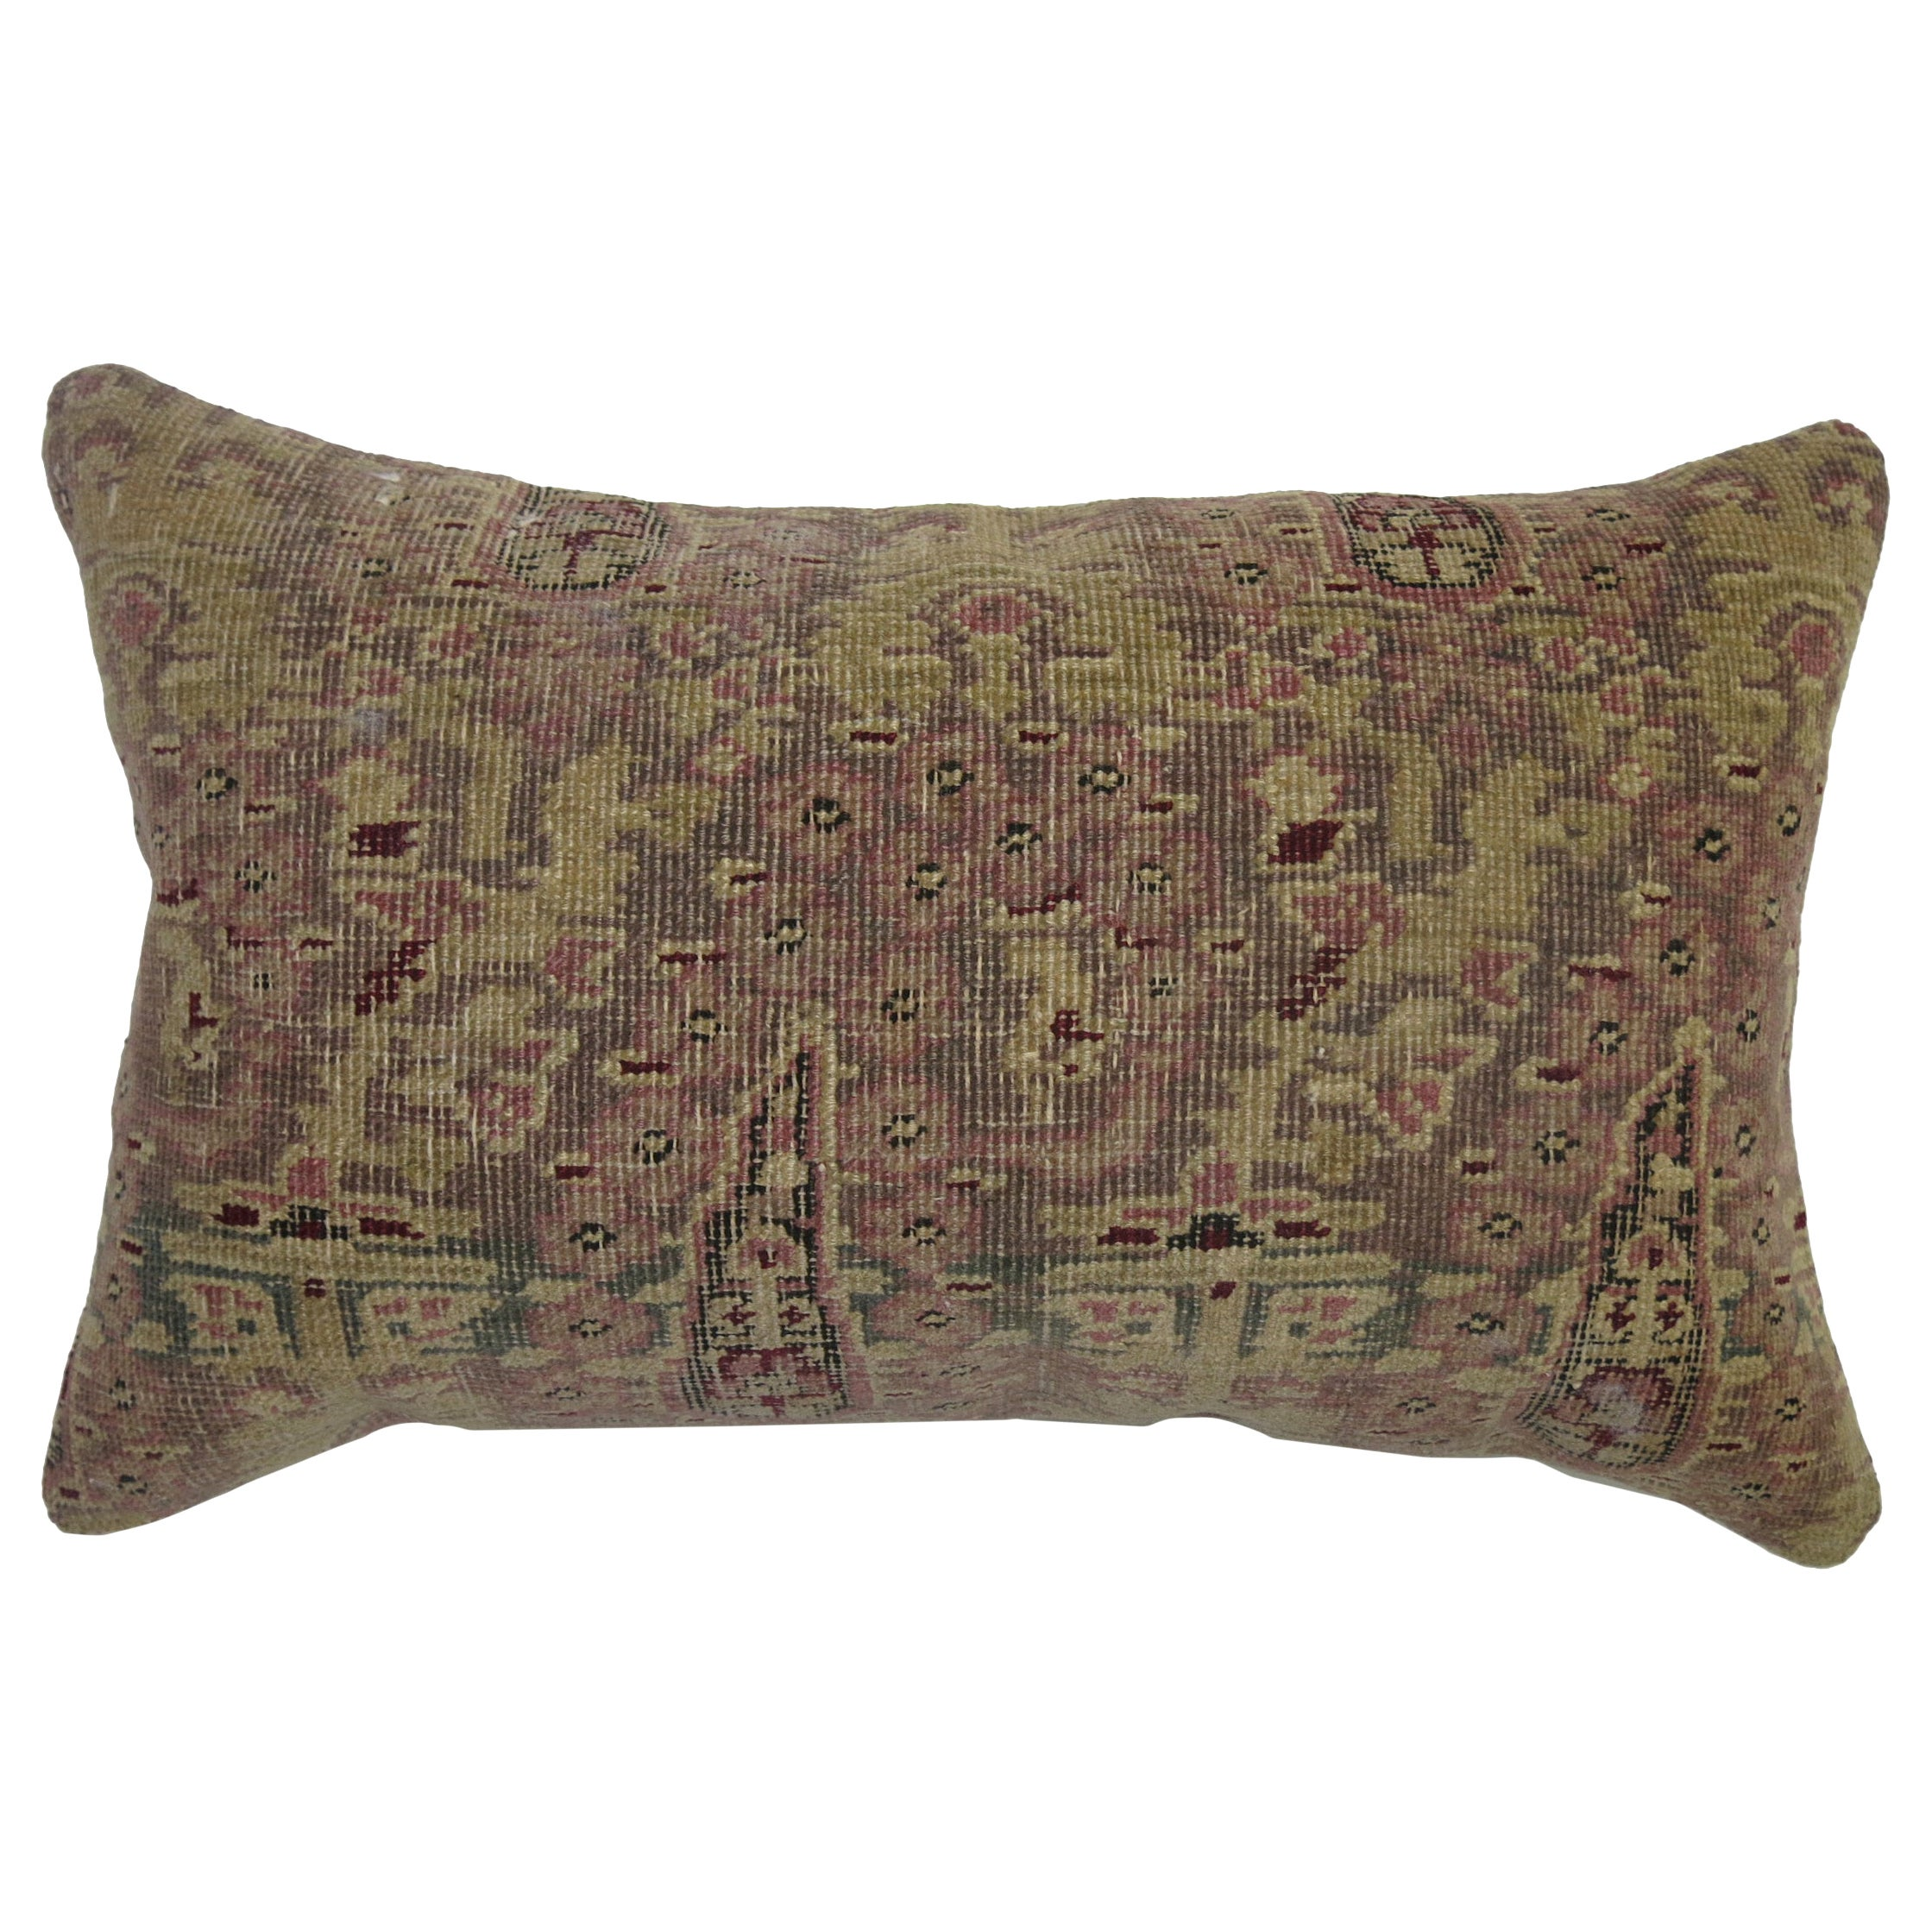 Antique Indian Agra Bolster Rug Pillow